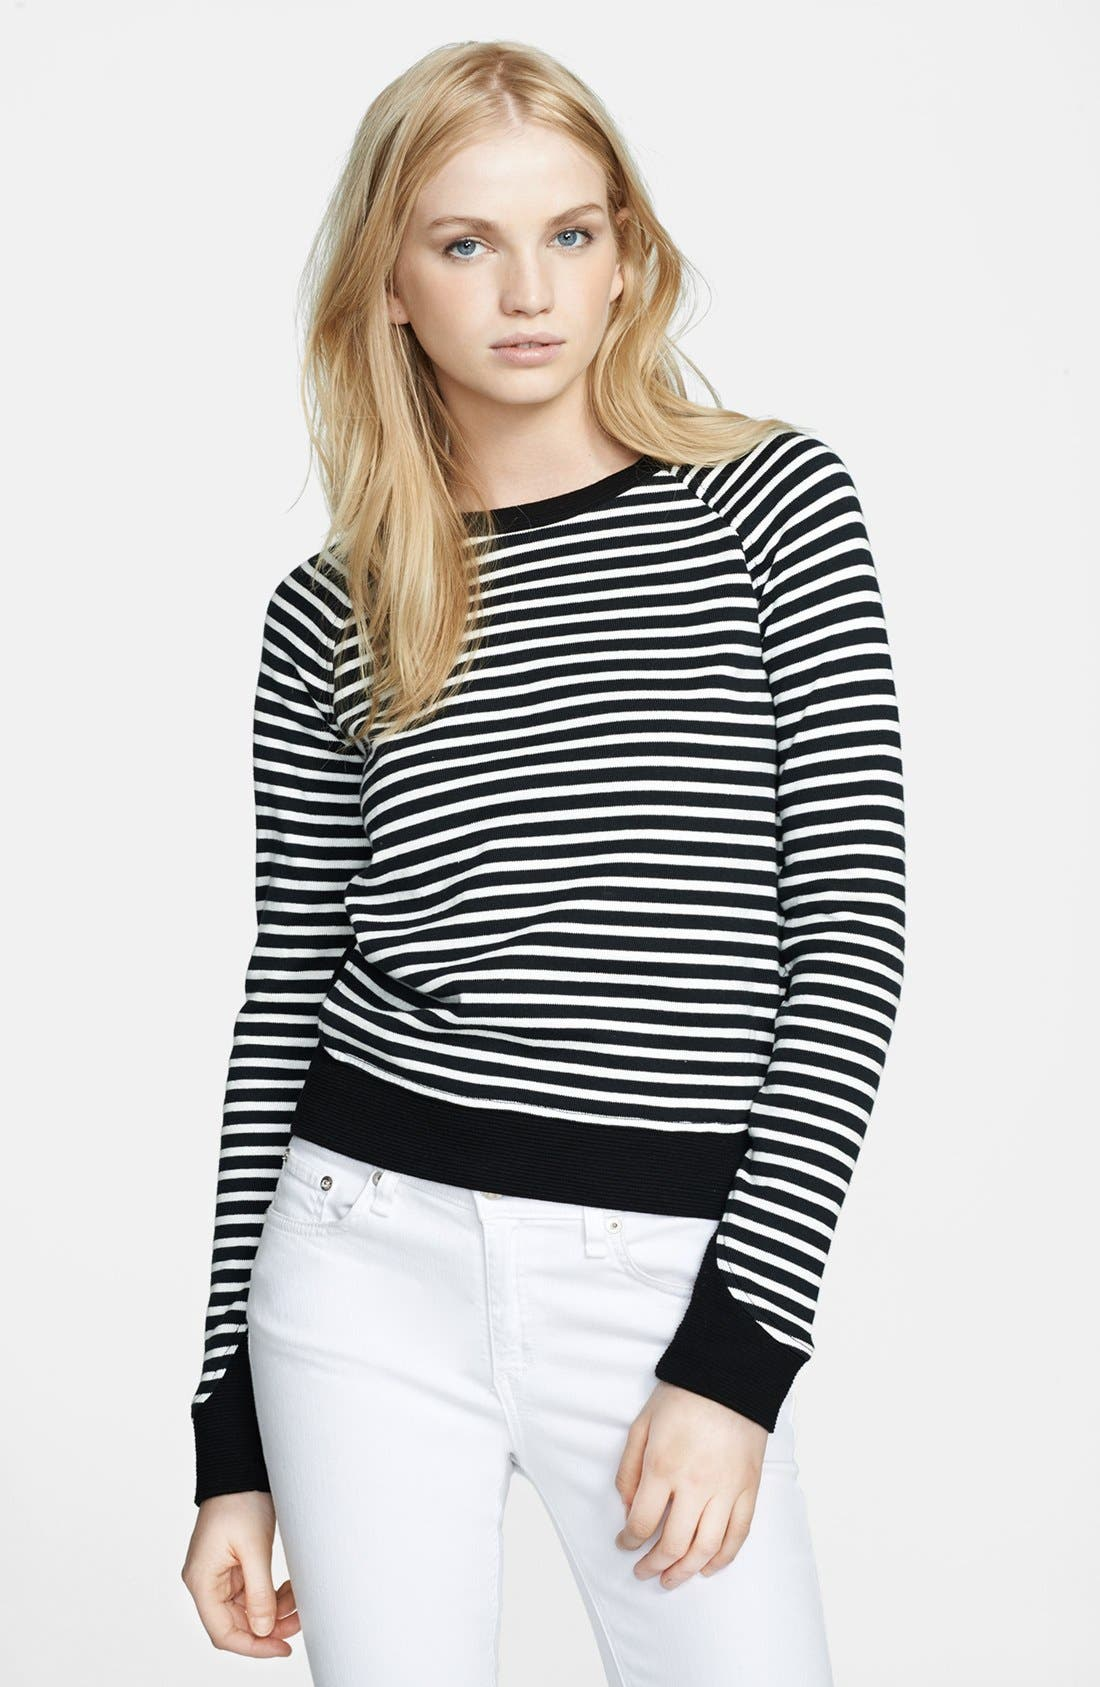 Alternate Image 1 Selected - Whetherly 'Liam' Stripe Knit Sweater